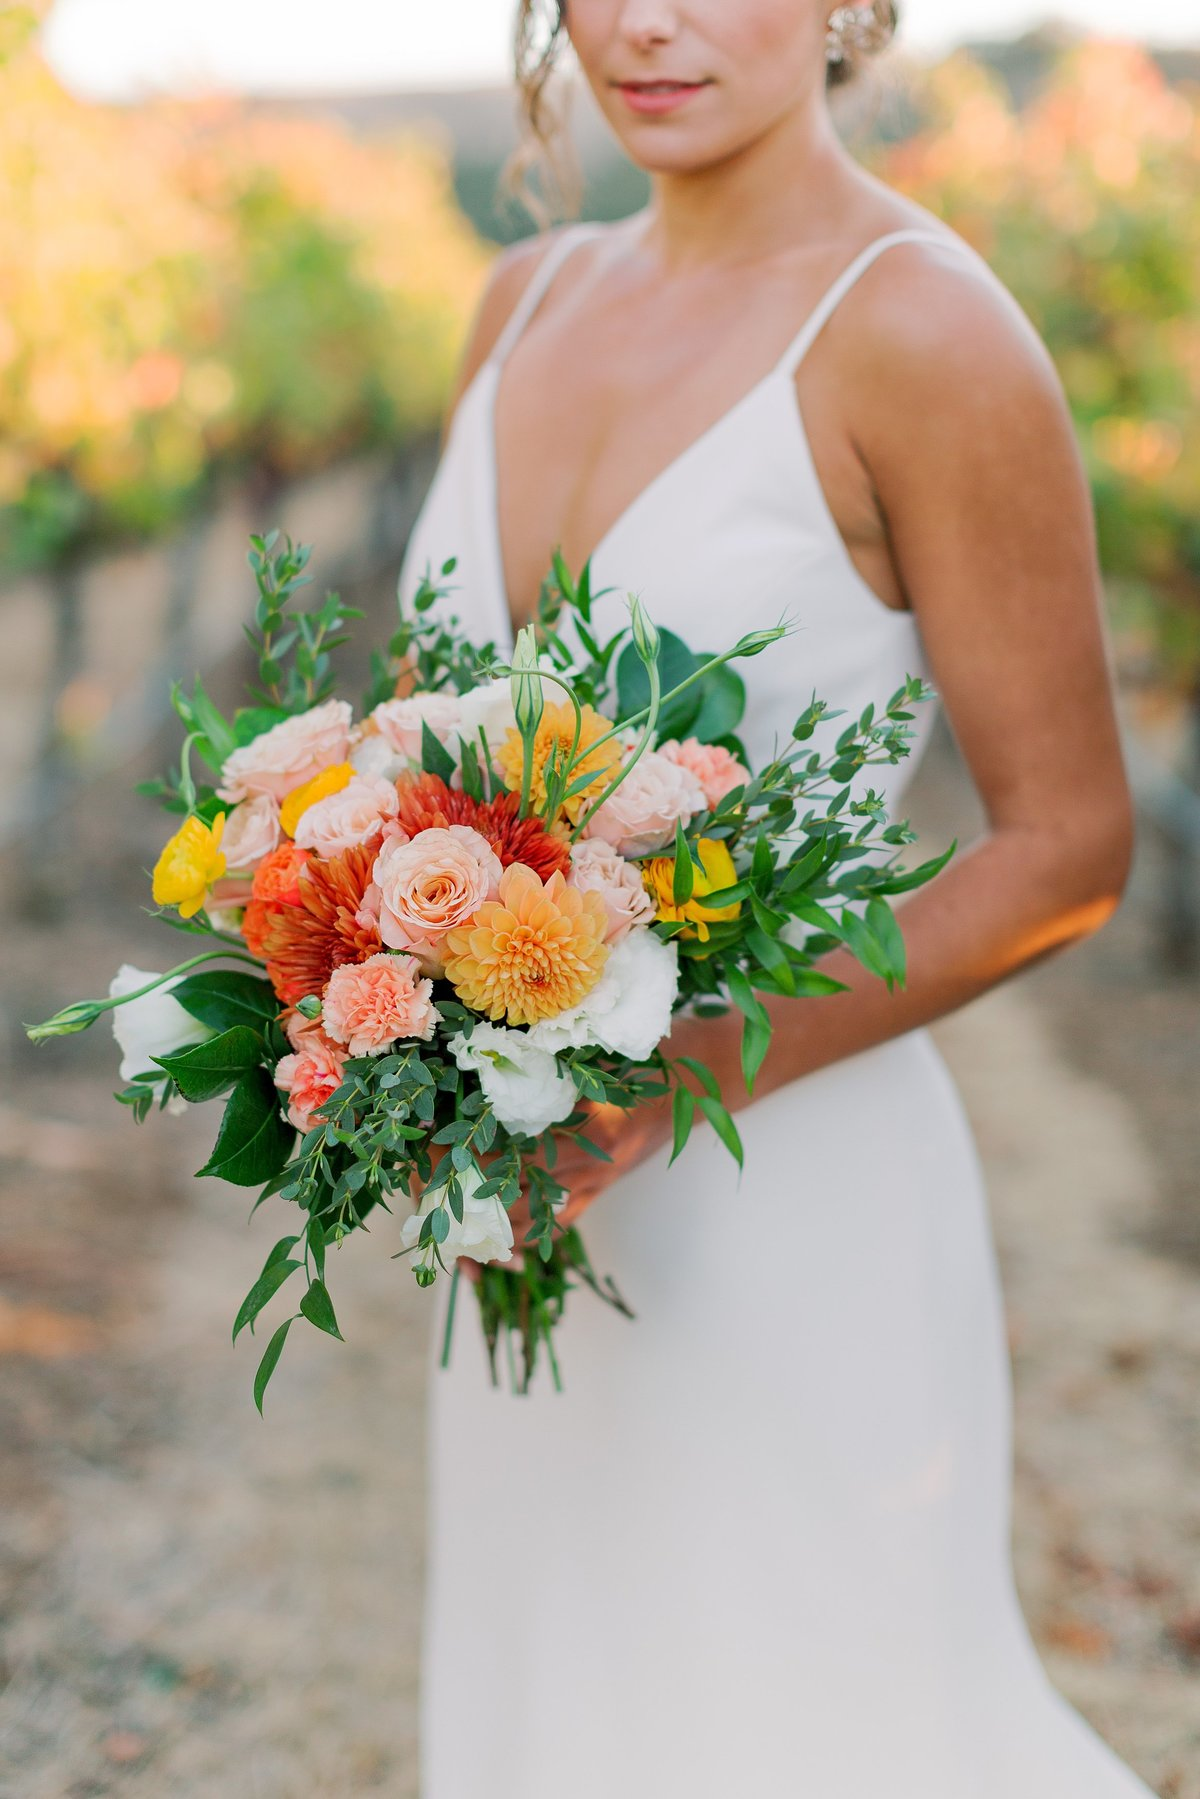 20191020 Modern Elegance Wedding Styled Shoot at Three Steves Winery Livermore_Bethany Picone Photography - 0430_WEB